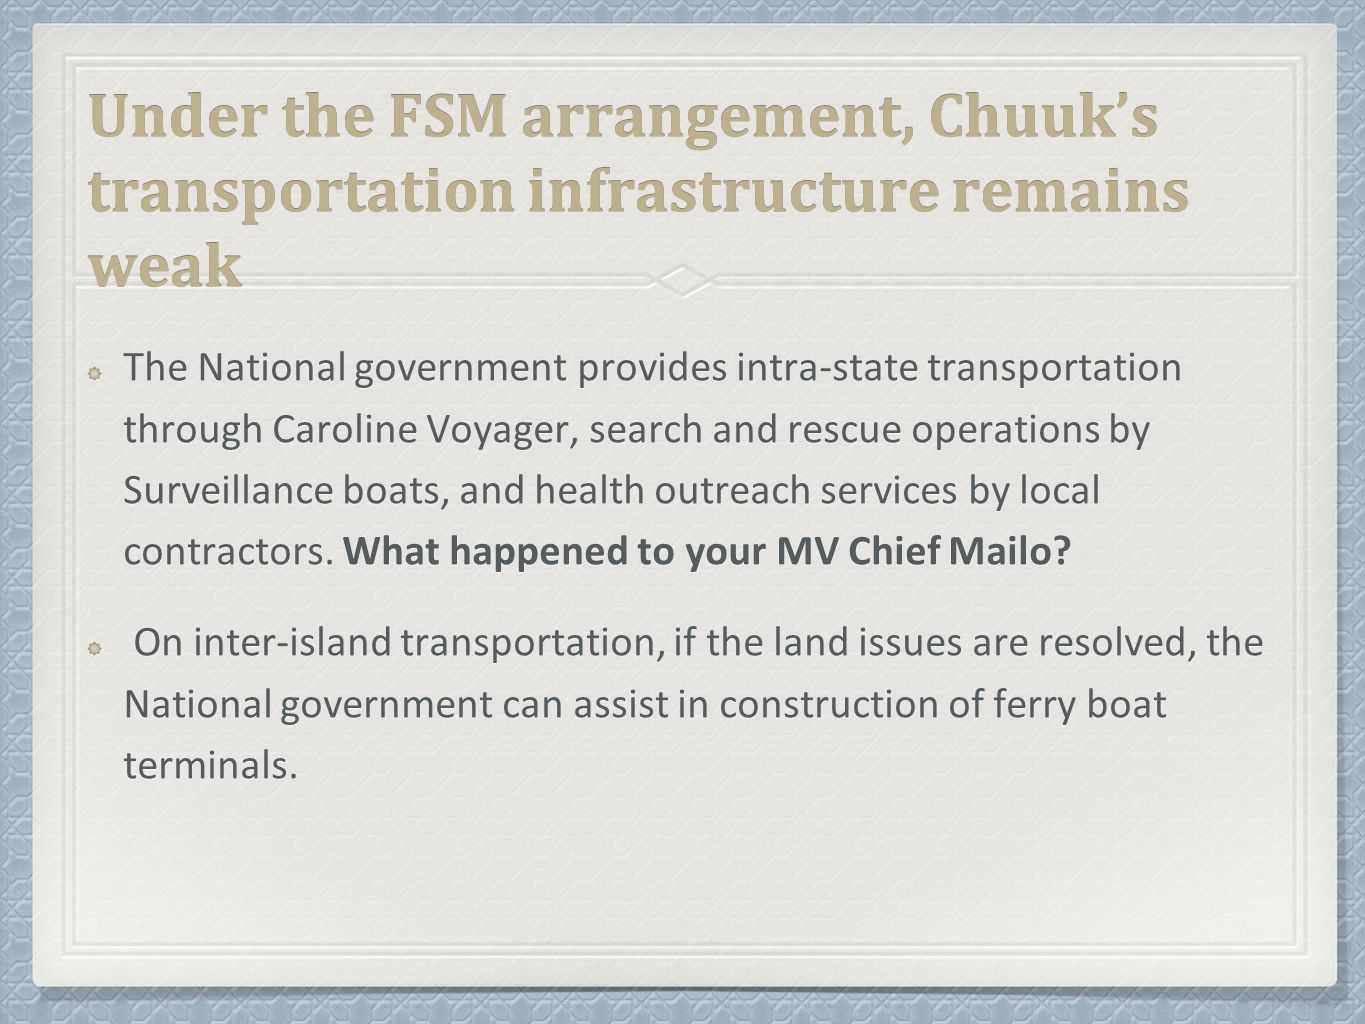 Under the FSM arrangement, Chuuk's transportation infrastructure remains weak The National government provides intra-state transportation through Caroline Voyager, search and rescue operations by Surveillance boats, and health outreach services by local contractors.